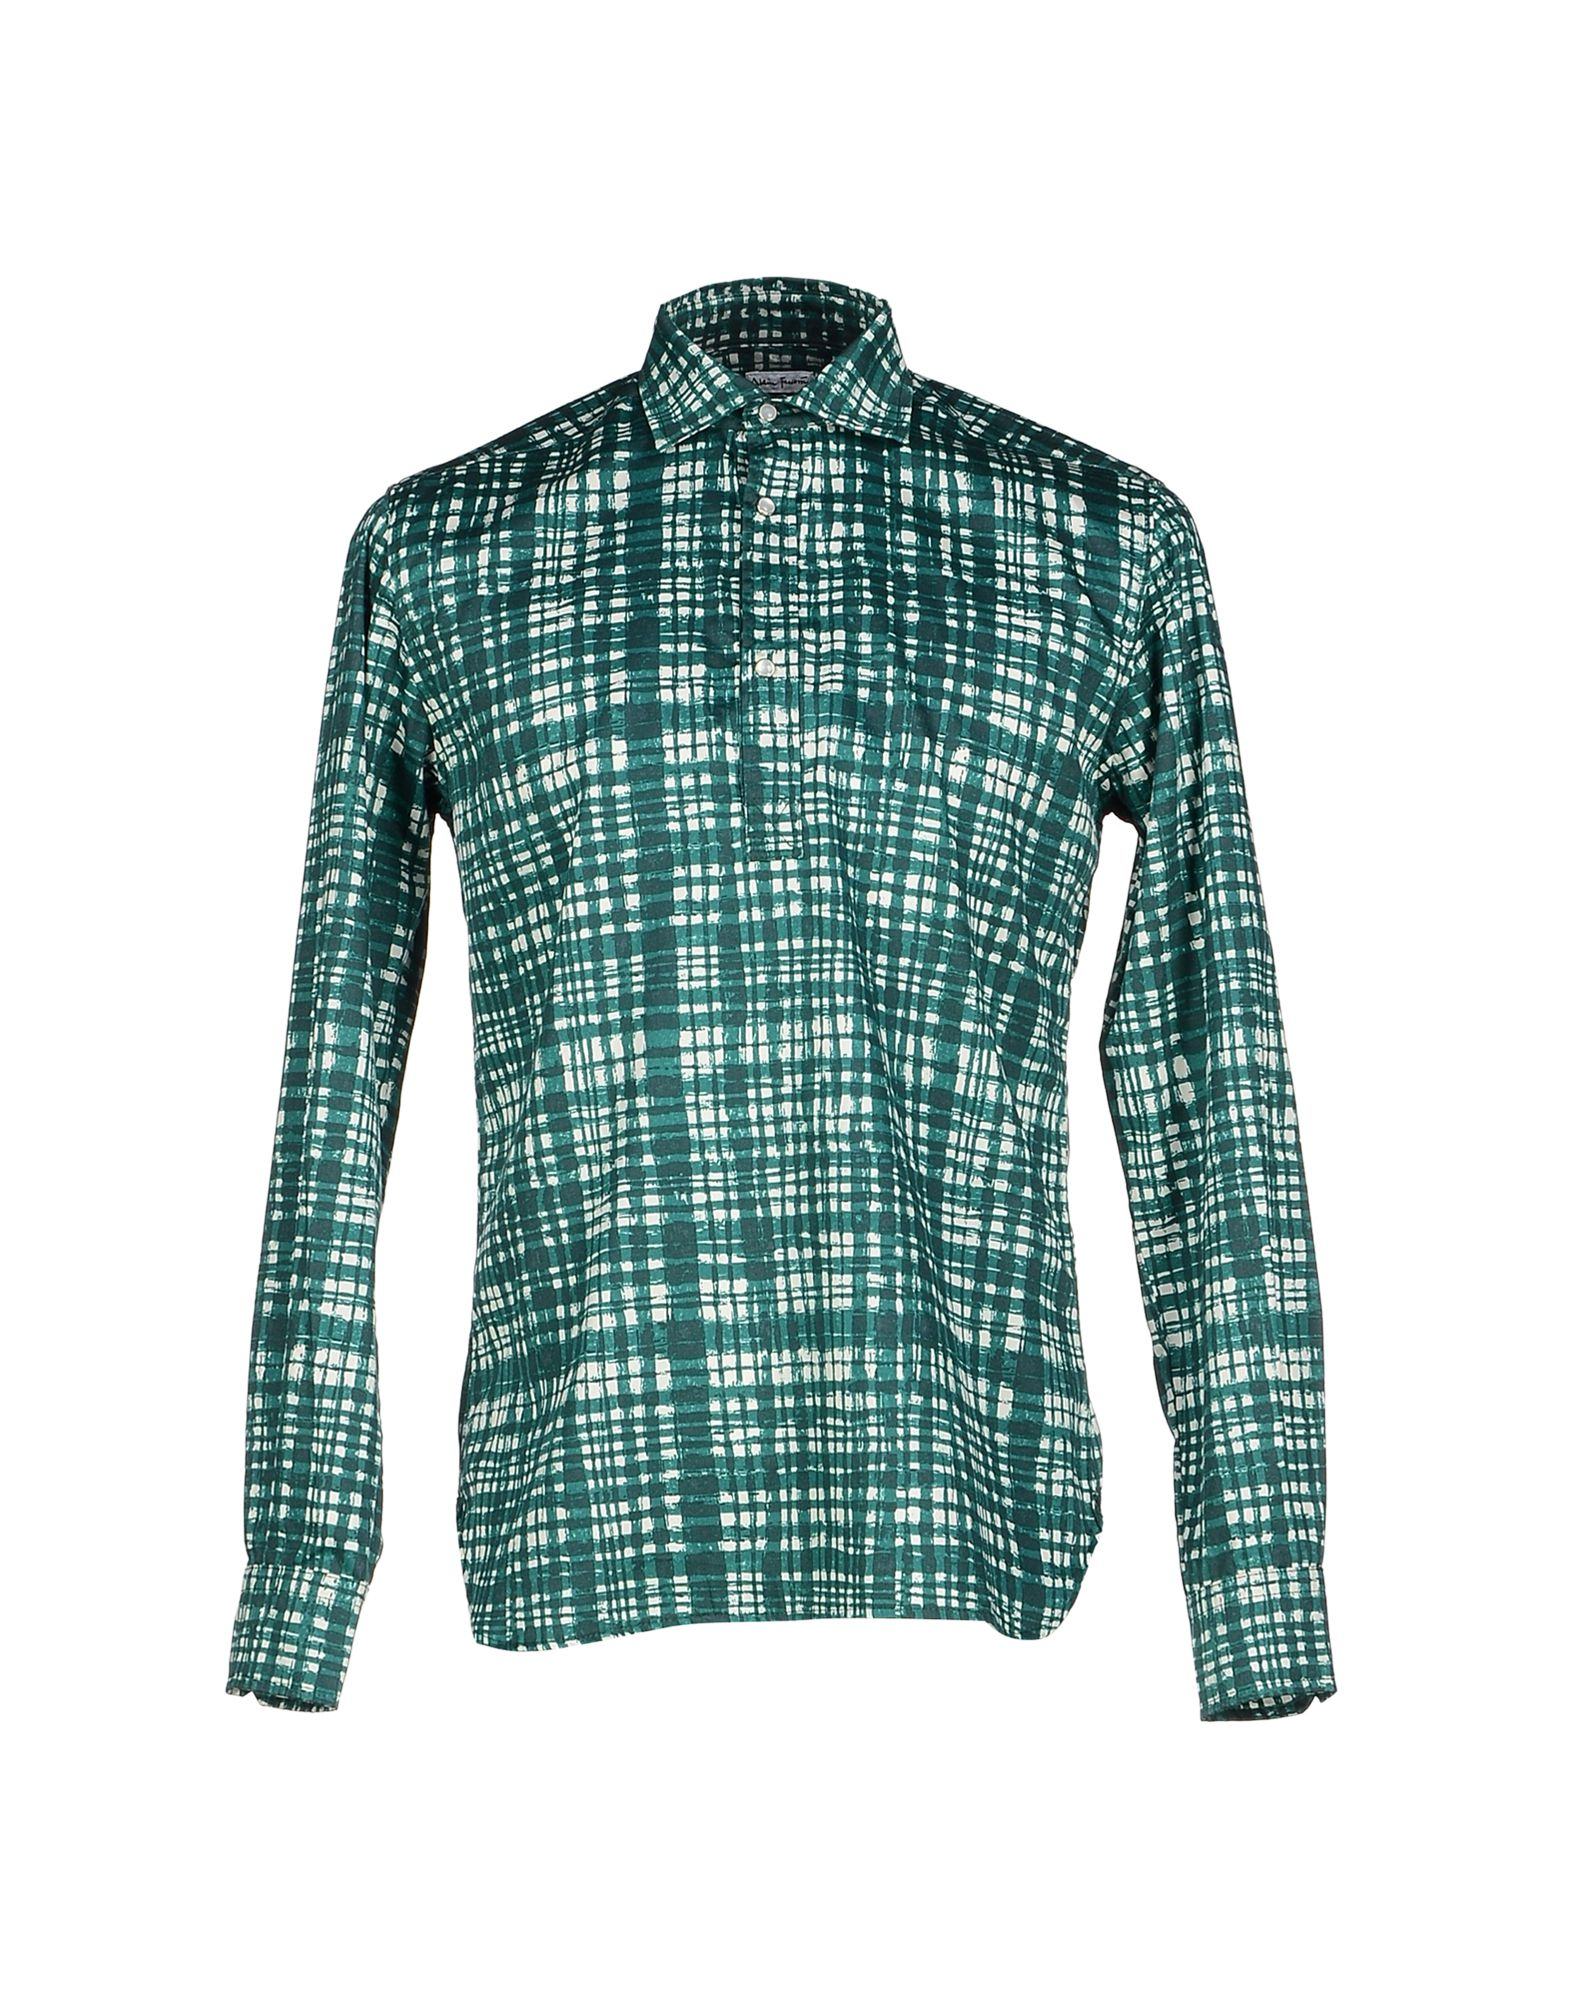 Alain shirt in green for men lyst Emerald green mens dress shirt